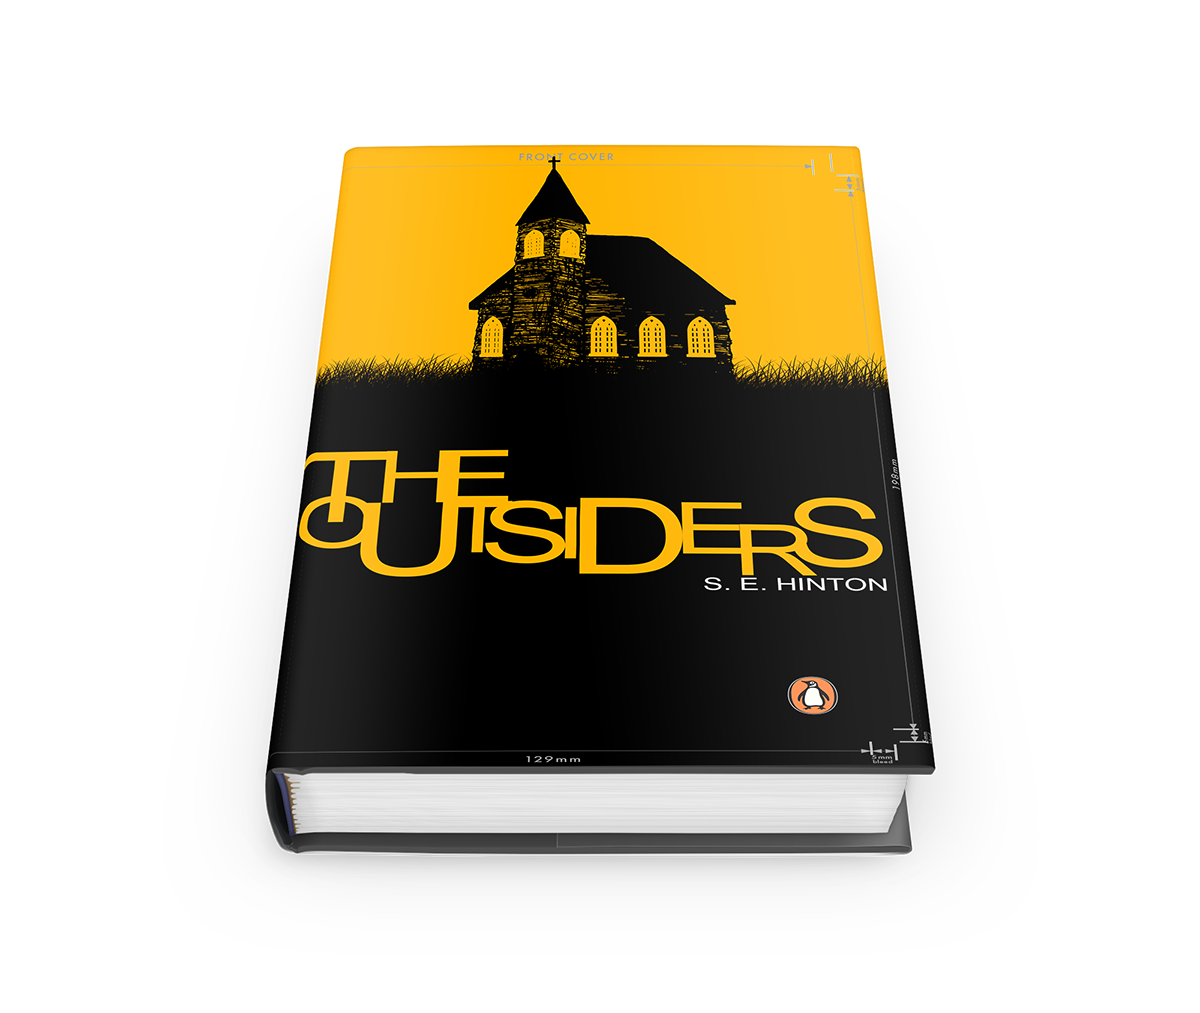 Book Cover Design Png : The outsiders book cover design penguin books on behance